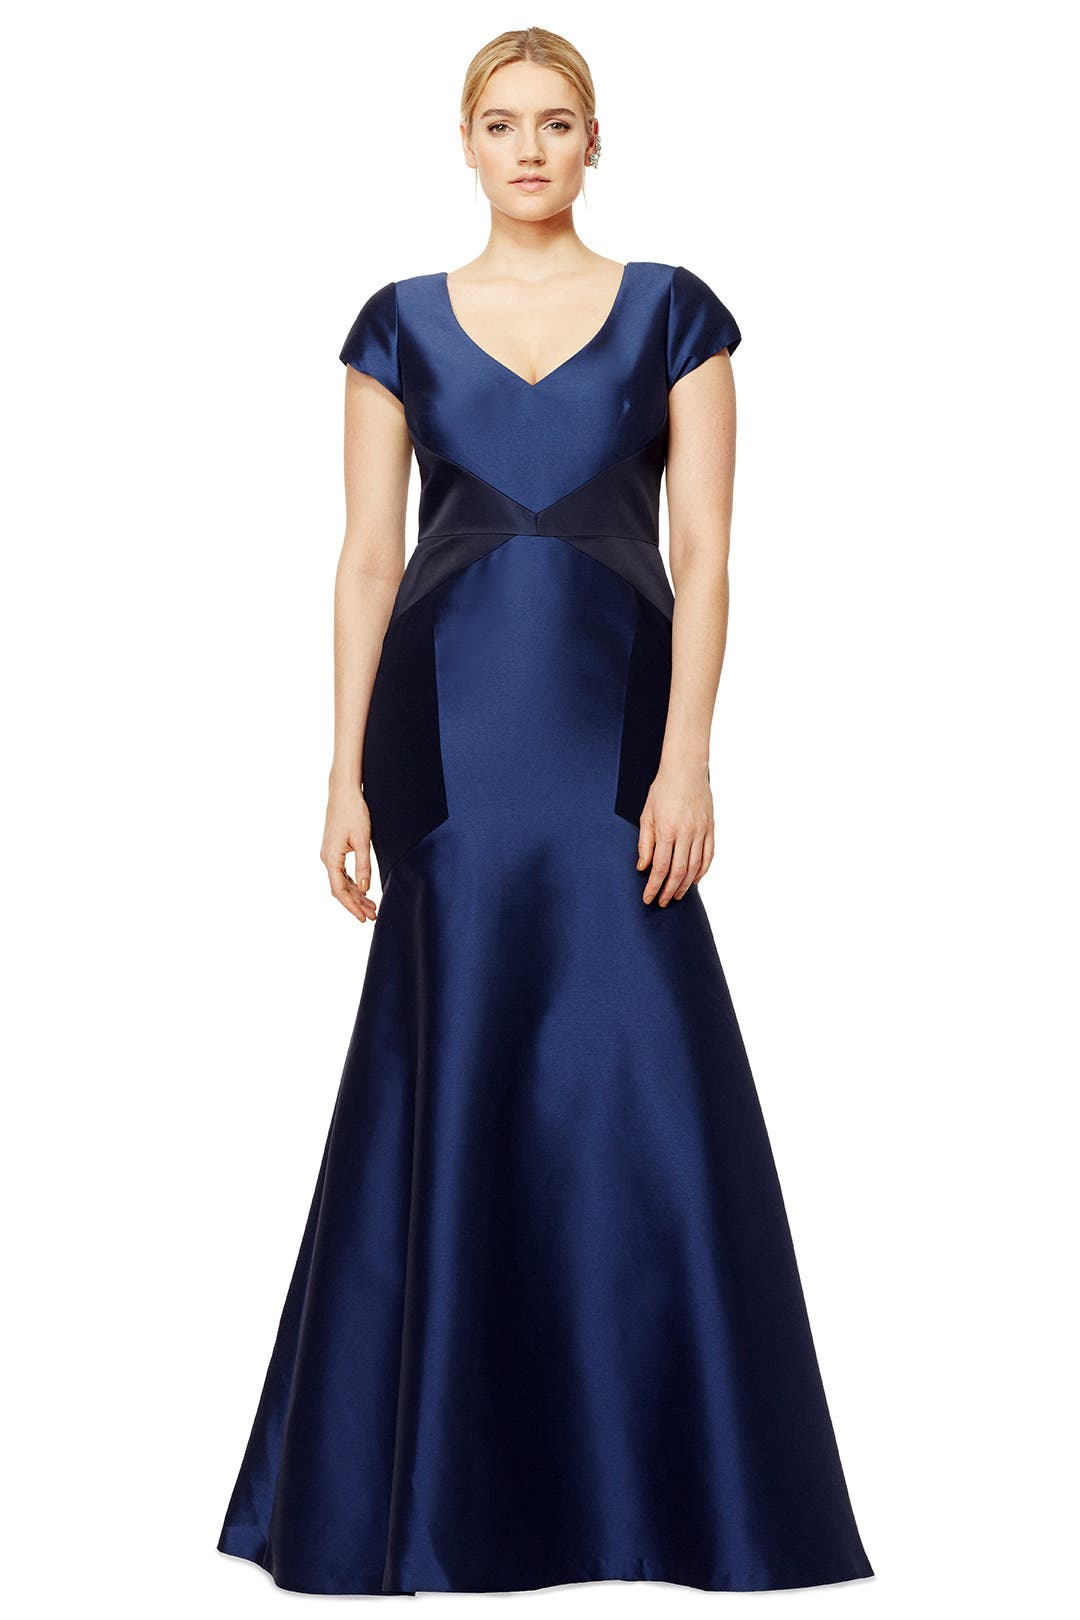 Blue Moon Gown by Theia for $115 | Rent the Runway